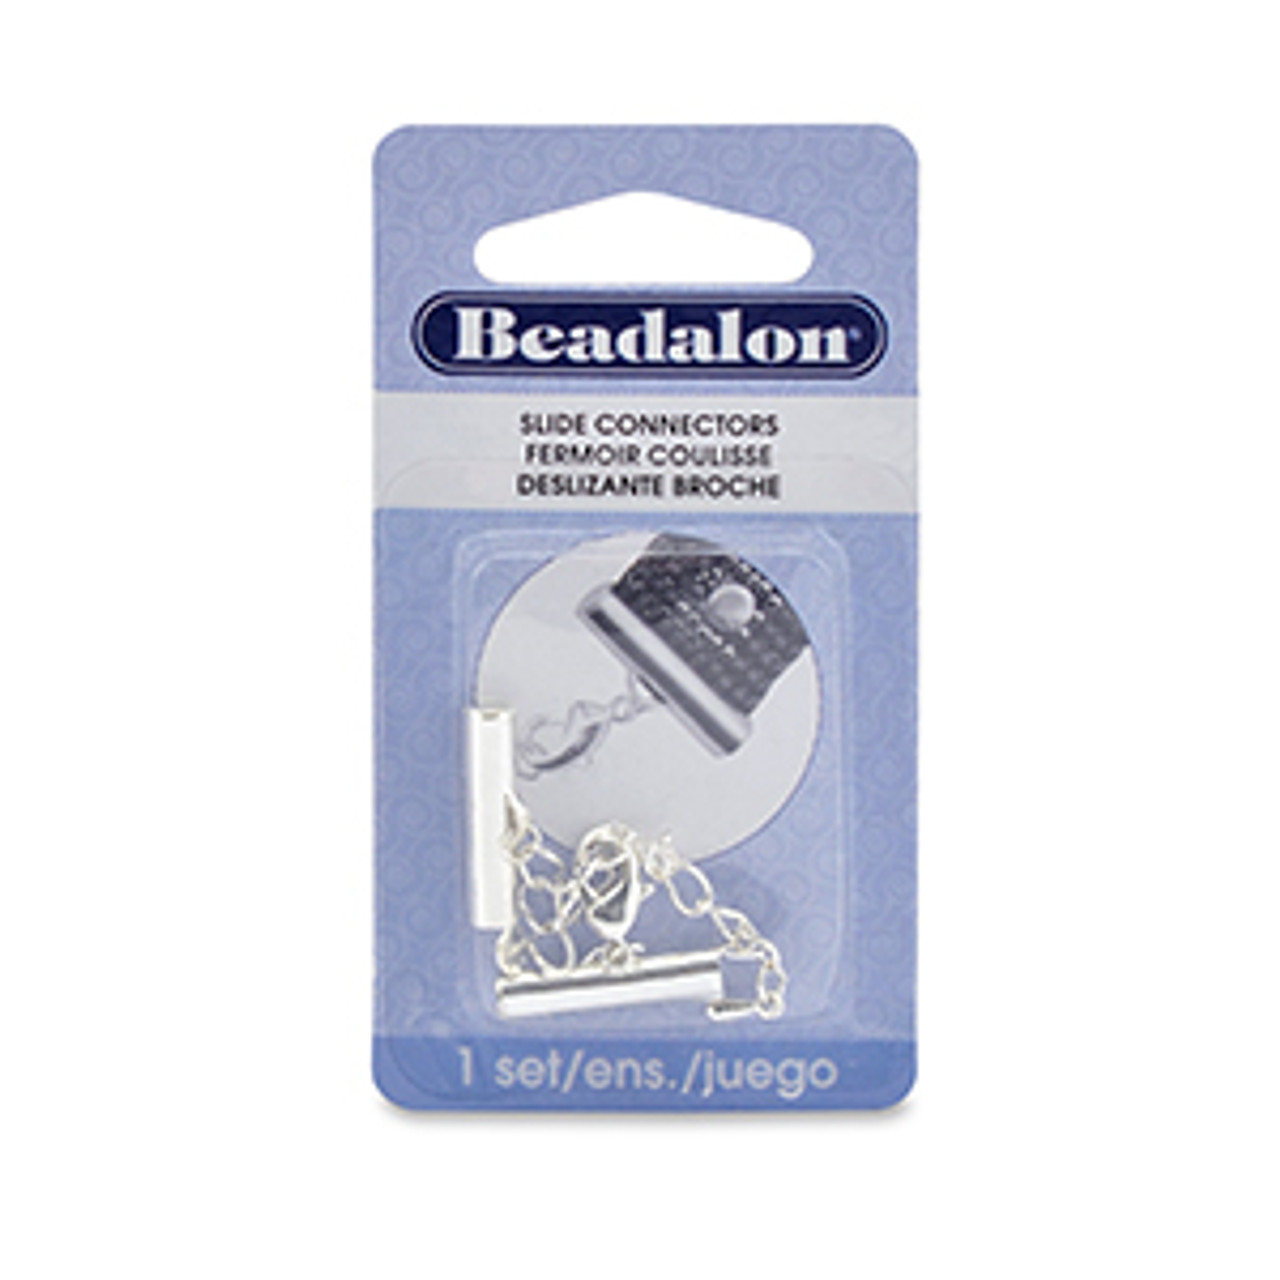 Beadalon Silver Plated 20mm Slide Connector 324B-062